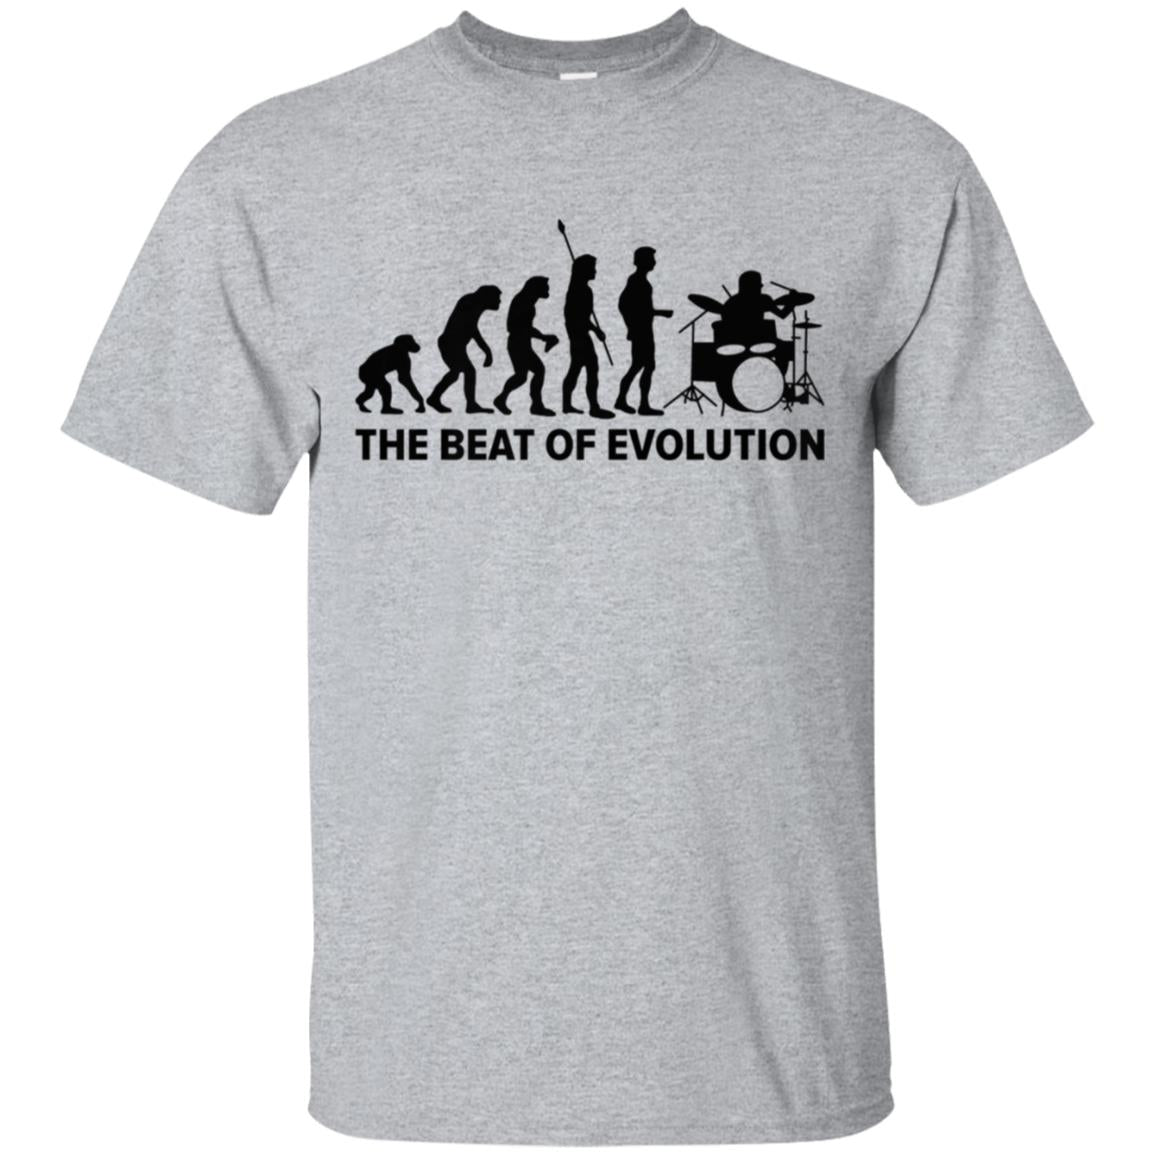 Drums Funny T-shirt The Beat Of Evolution Drummer Gift Tee 99promocode